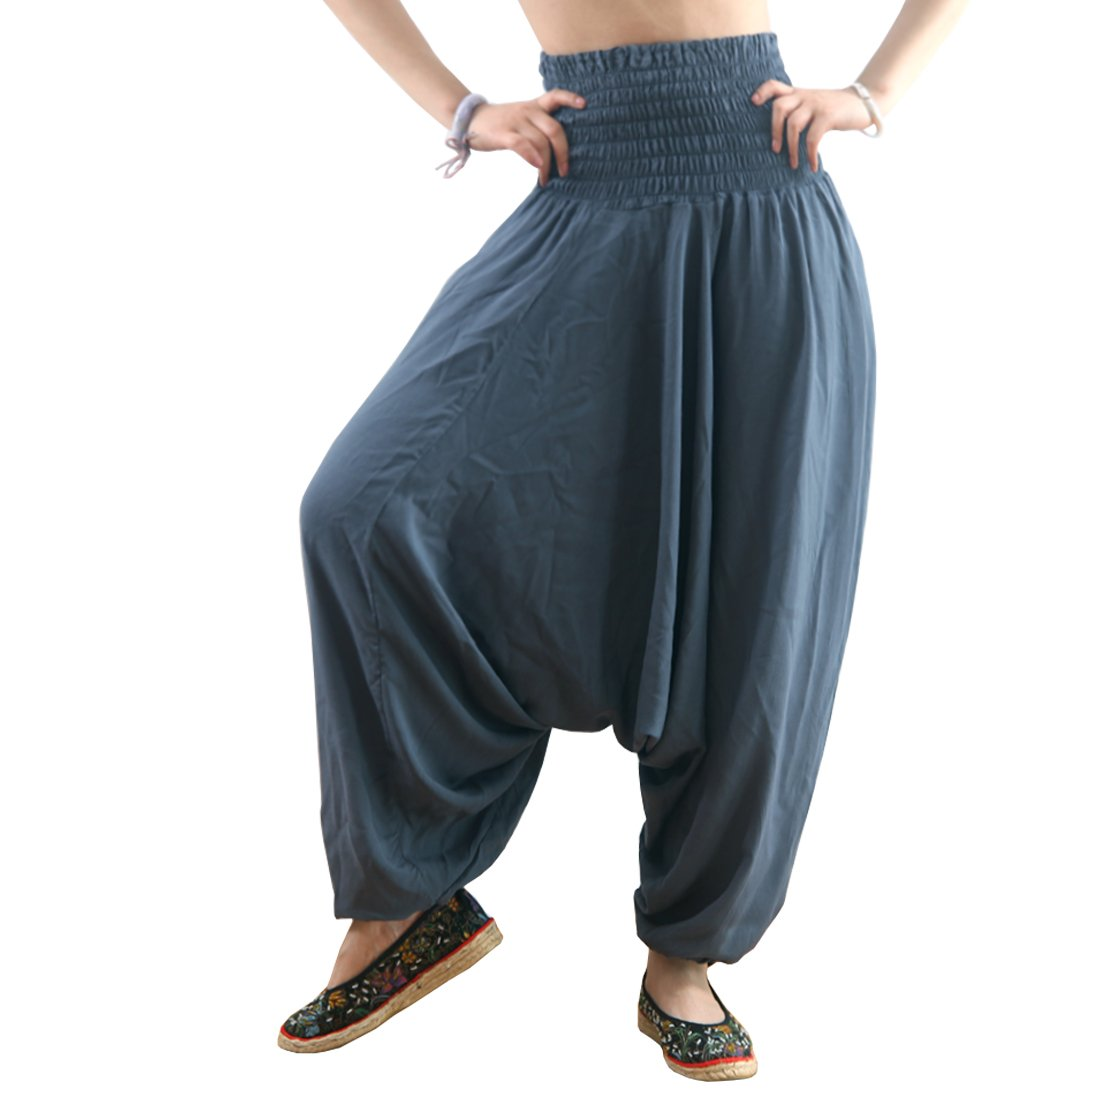 MissShorthair Women's Harem Pants Baggy Yoga Sports Workout Dancing Trousers H181C-2